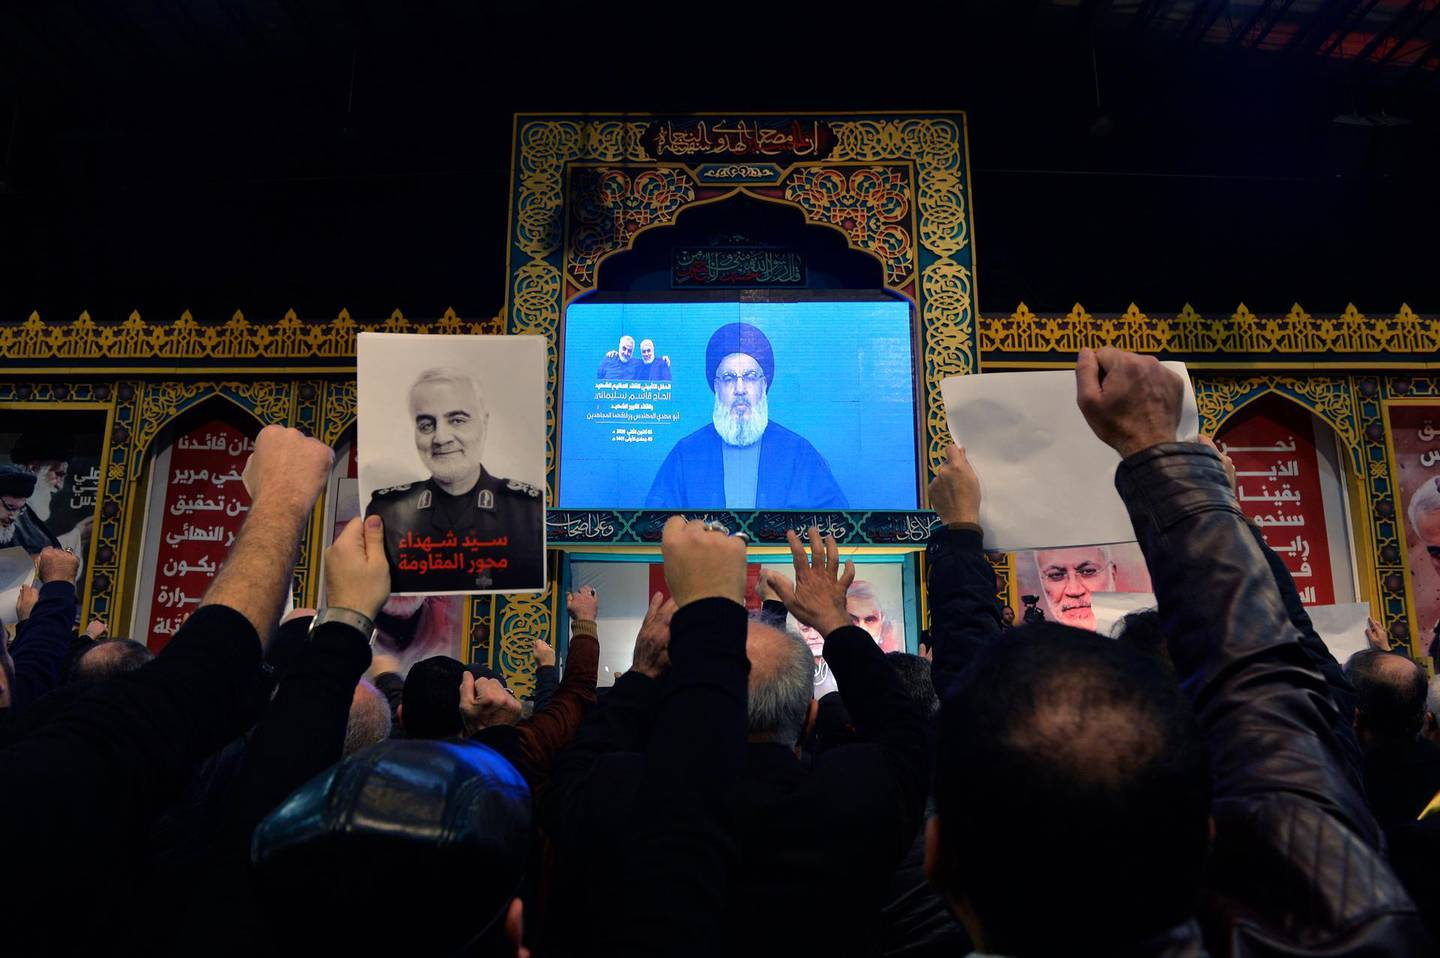 epa08104470 Supporters of Hezbollah listen to Hezbollah's Secretary-General Sayed Hassan Nasrallah as he delivers a speech on a screen during a mass rally to pay tribute the Iranian Revolutionary Guards Corps (IRGC) Lieutenant general and commander of the Quds Force Qasem Soleimani in the southern suburb of Beirut, Lebanon, 05 January 2020. The US Pentagon announced that Iran's Quds Force leader Soleimani and Iraqi militia commander Abu Mahdi al-Muhandis were killed on 03 January 2020 following a US airstrike at Baghdad's international airport. The attack comes amid escalating tensions between Tehran and Washington.  EPA/WAEL HAMZEH